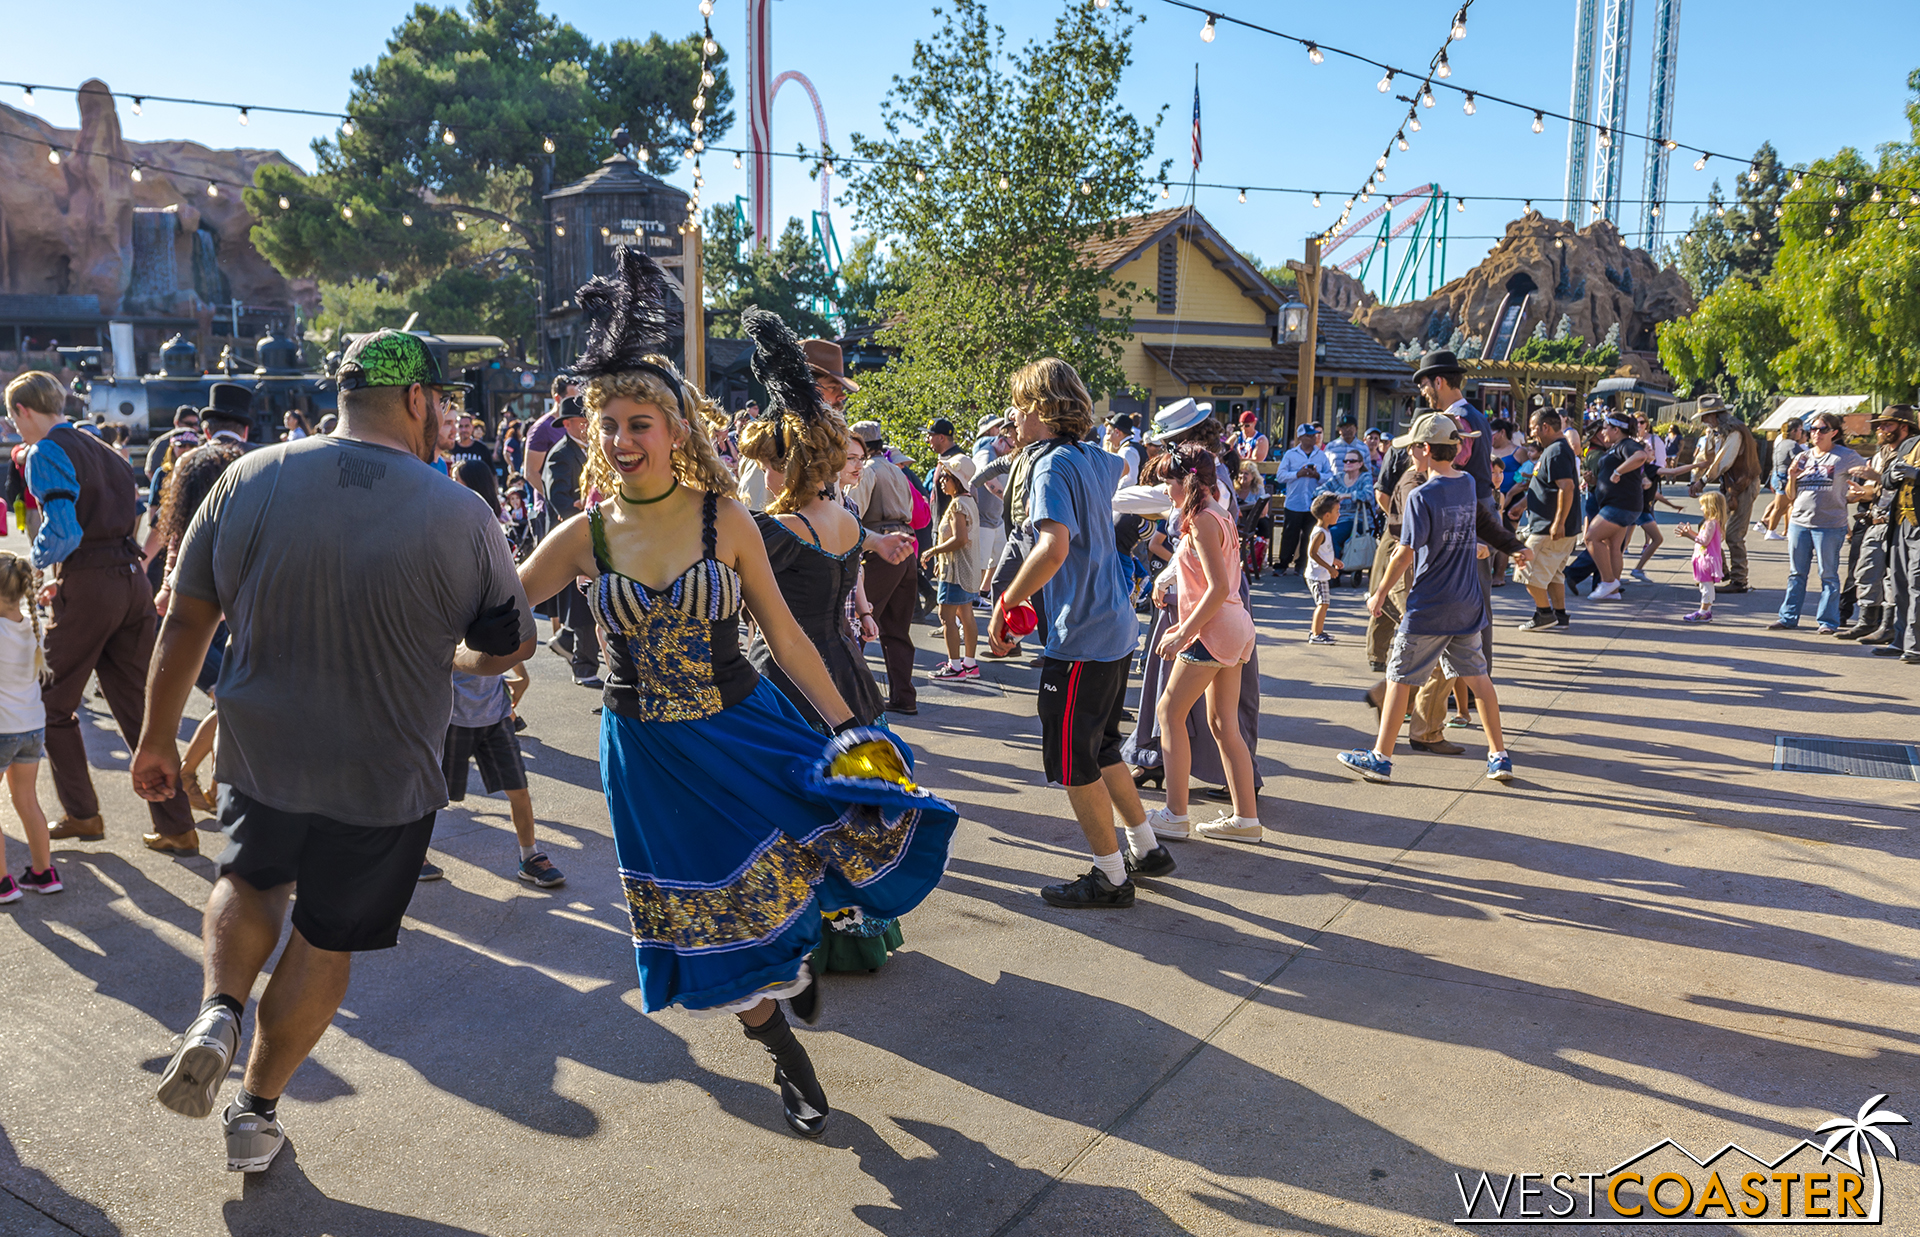 The crowd engages in several line and country dances, taught to them by the Citizens.